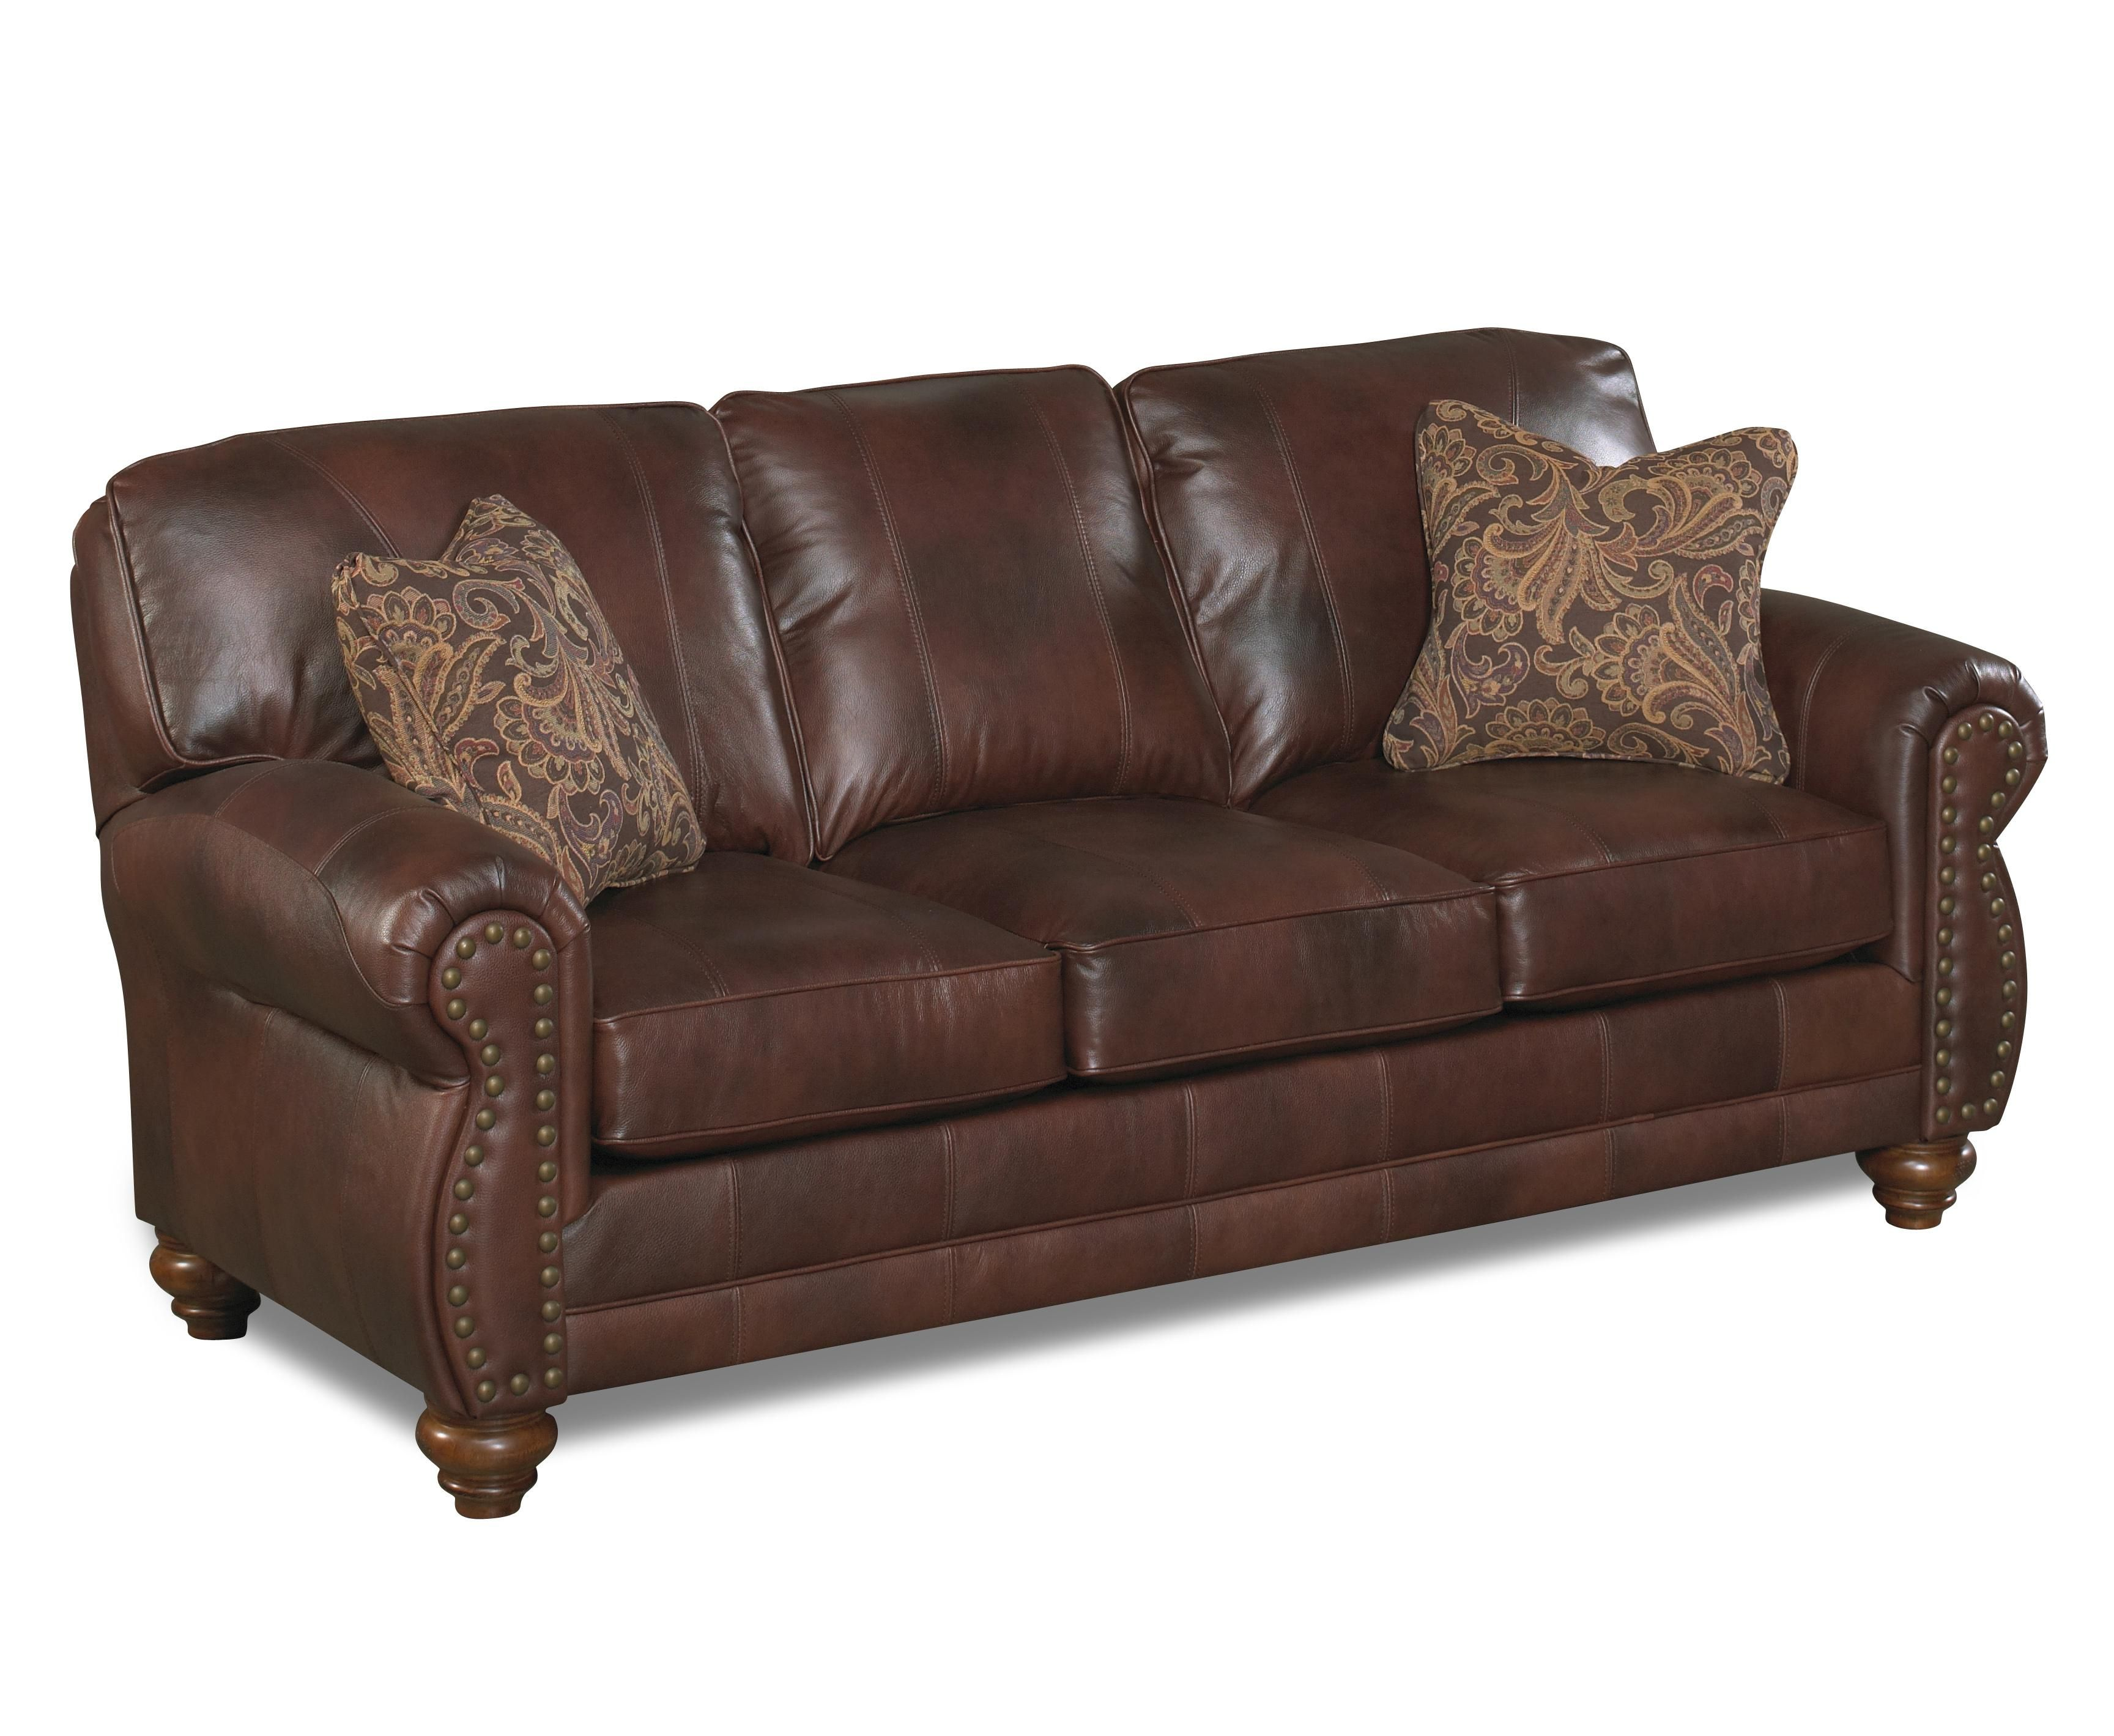 Noble Stationary Sofa By Best Home Furnishings 1639 00 Best Leather Sofa Goods Home Furnishings Nailhead Sofa Leather sofas with nailhead trim